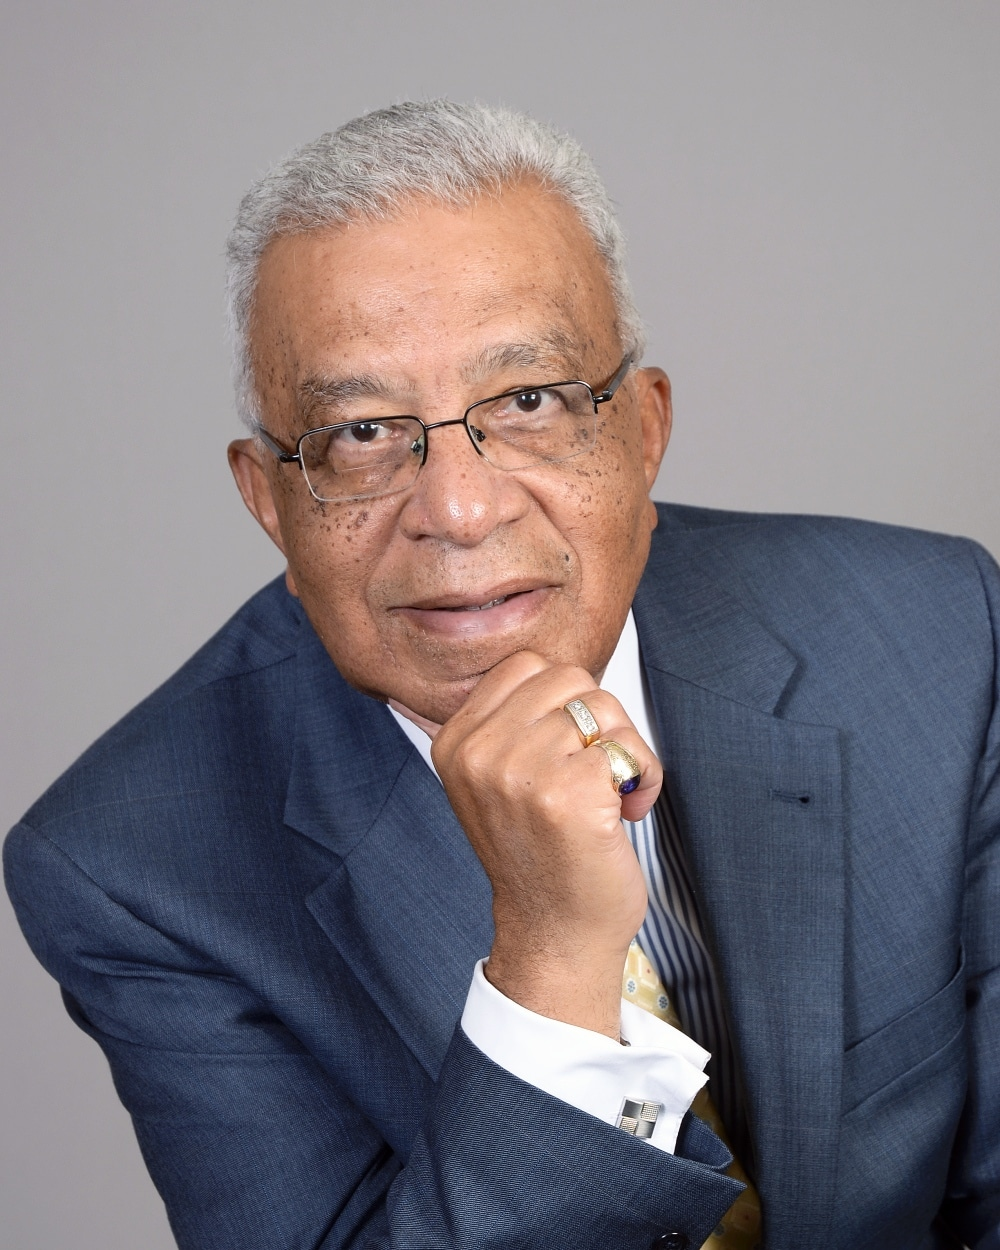 The Reverend Charles W. Quann has served as the Pastor of the Bethlehem Baptist Church since April 1986.